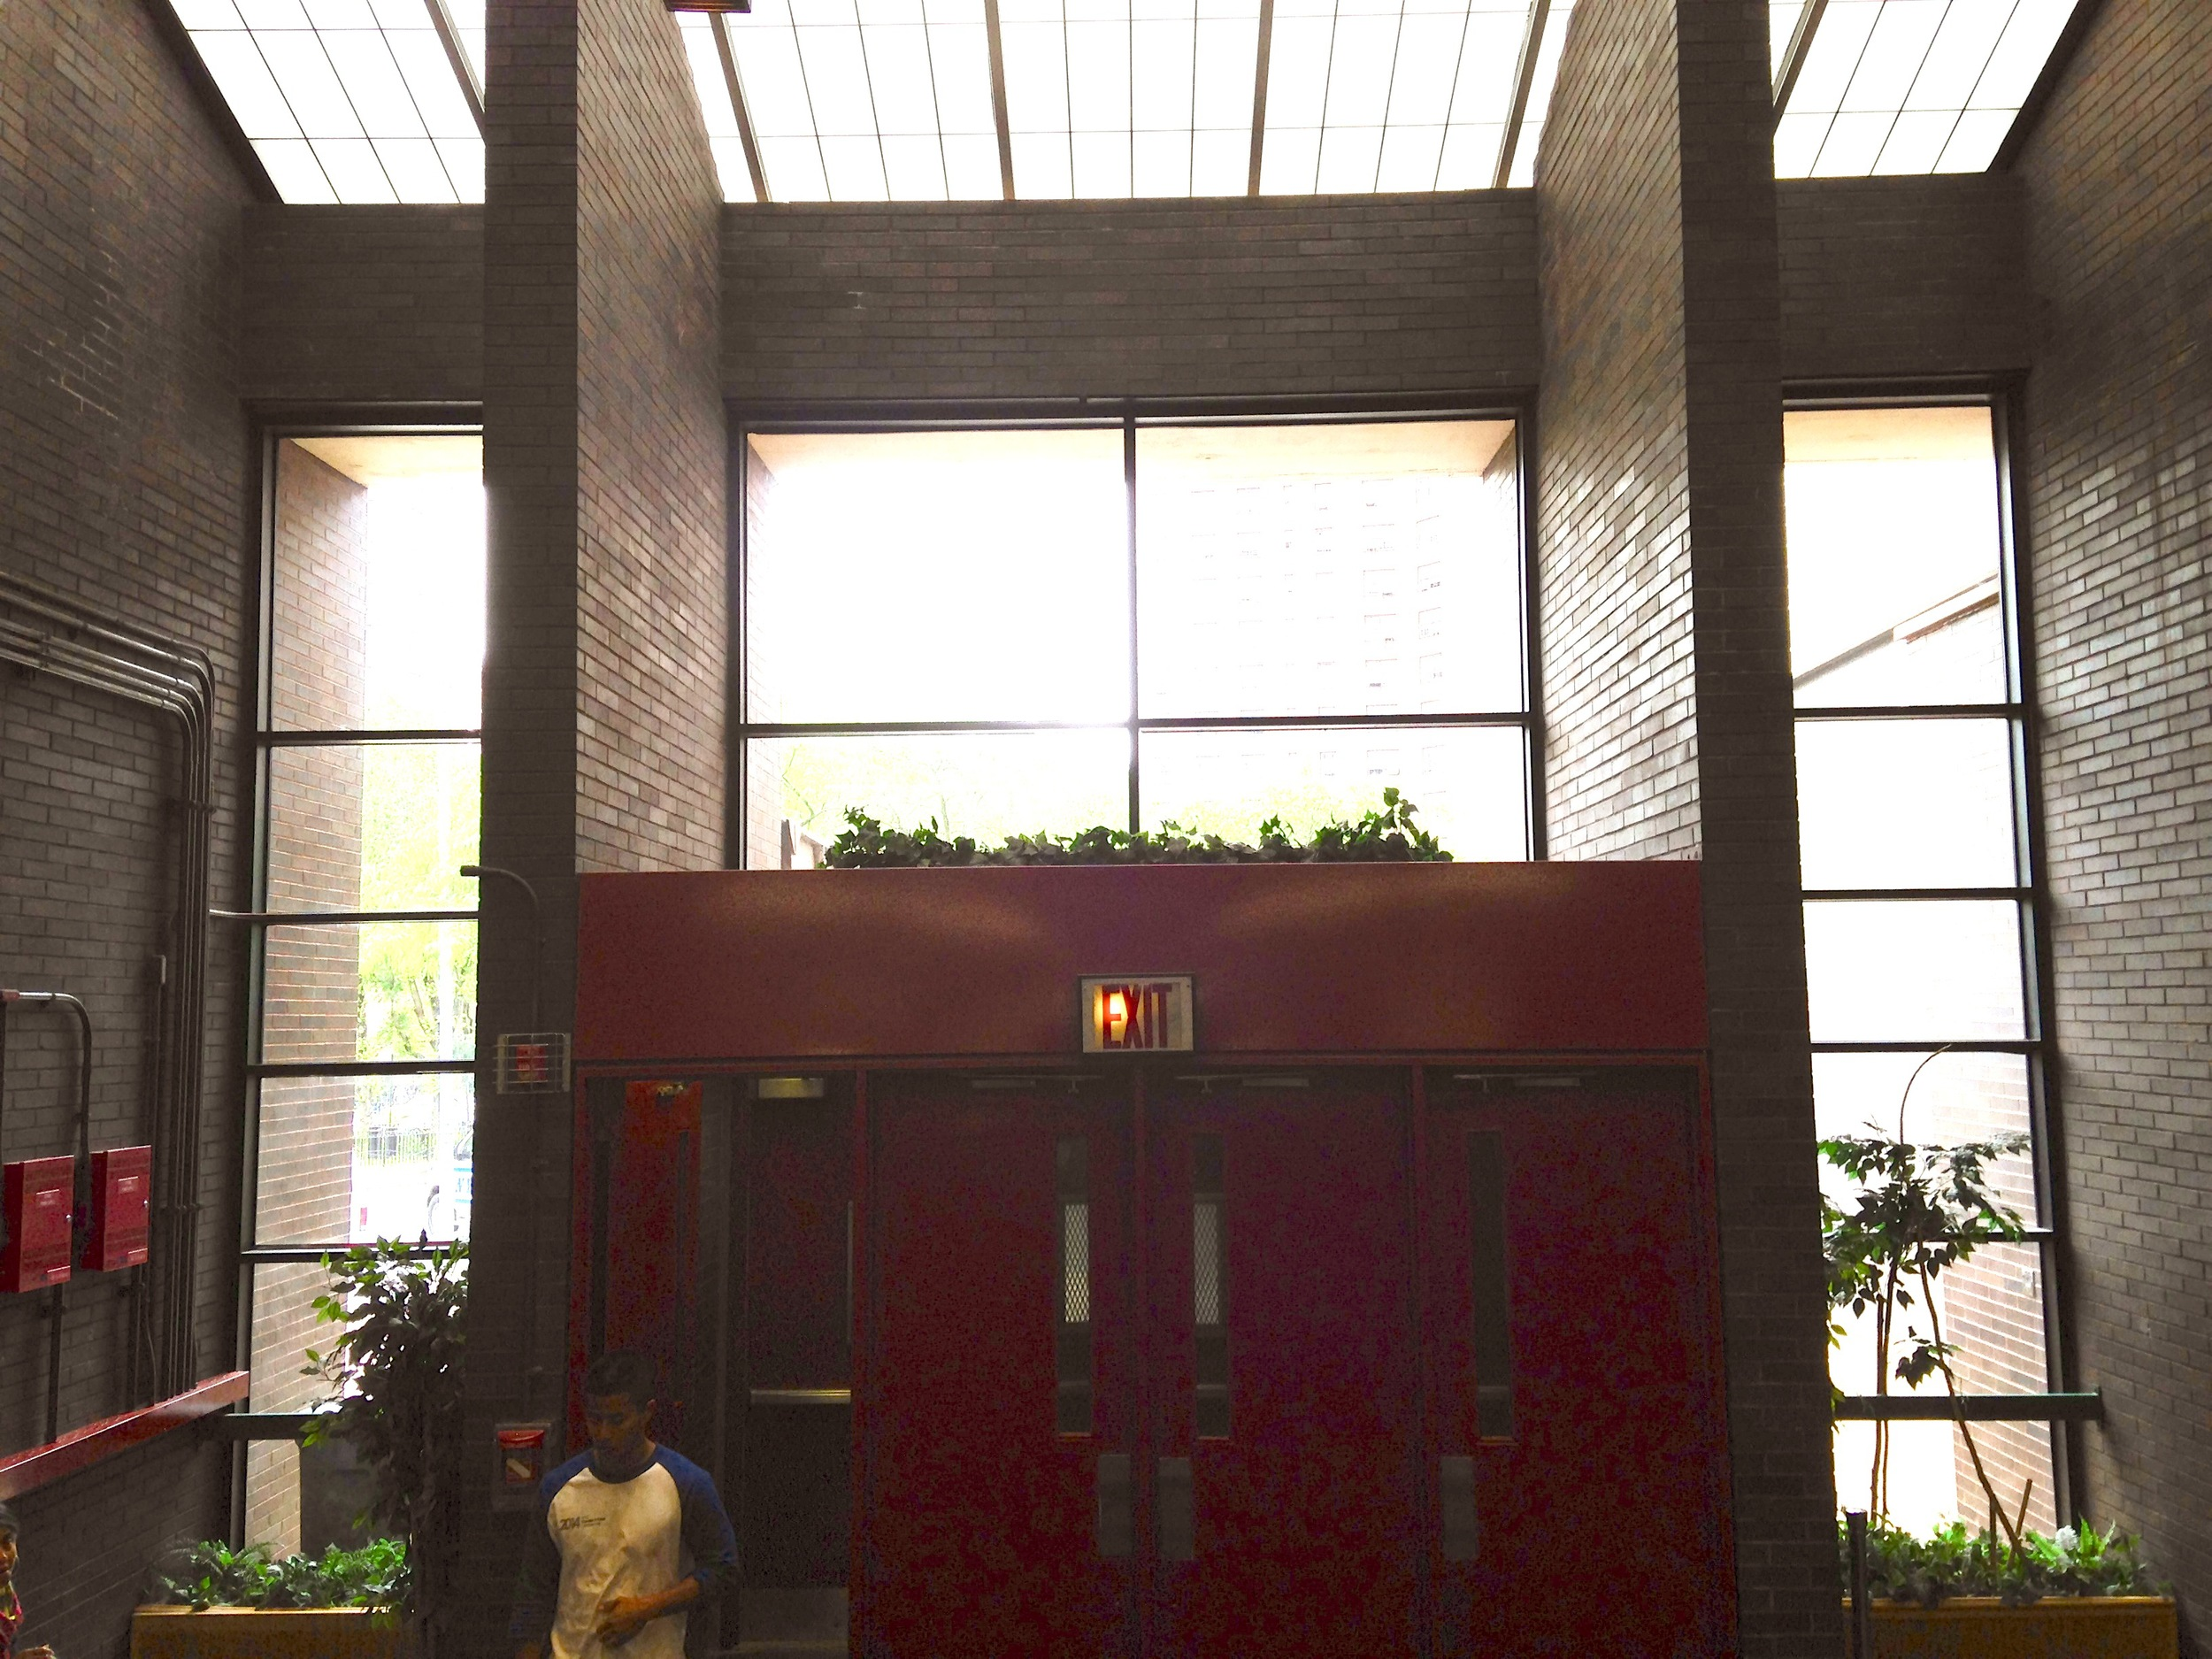 The building's main entrance.